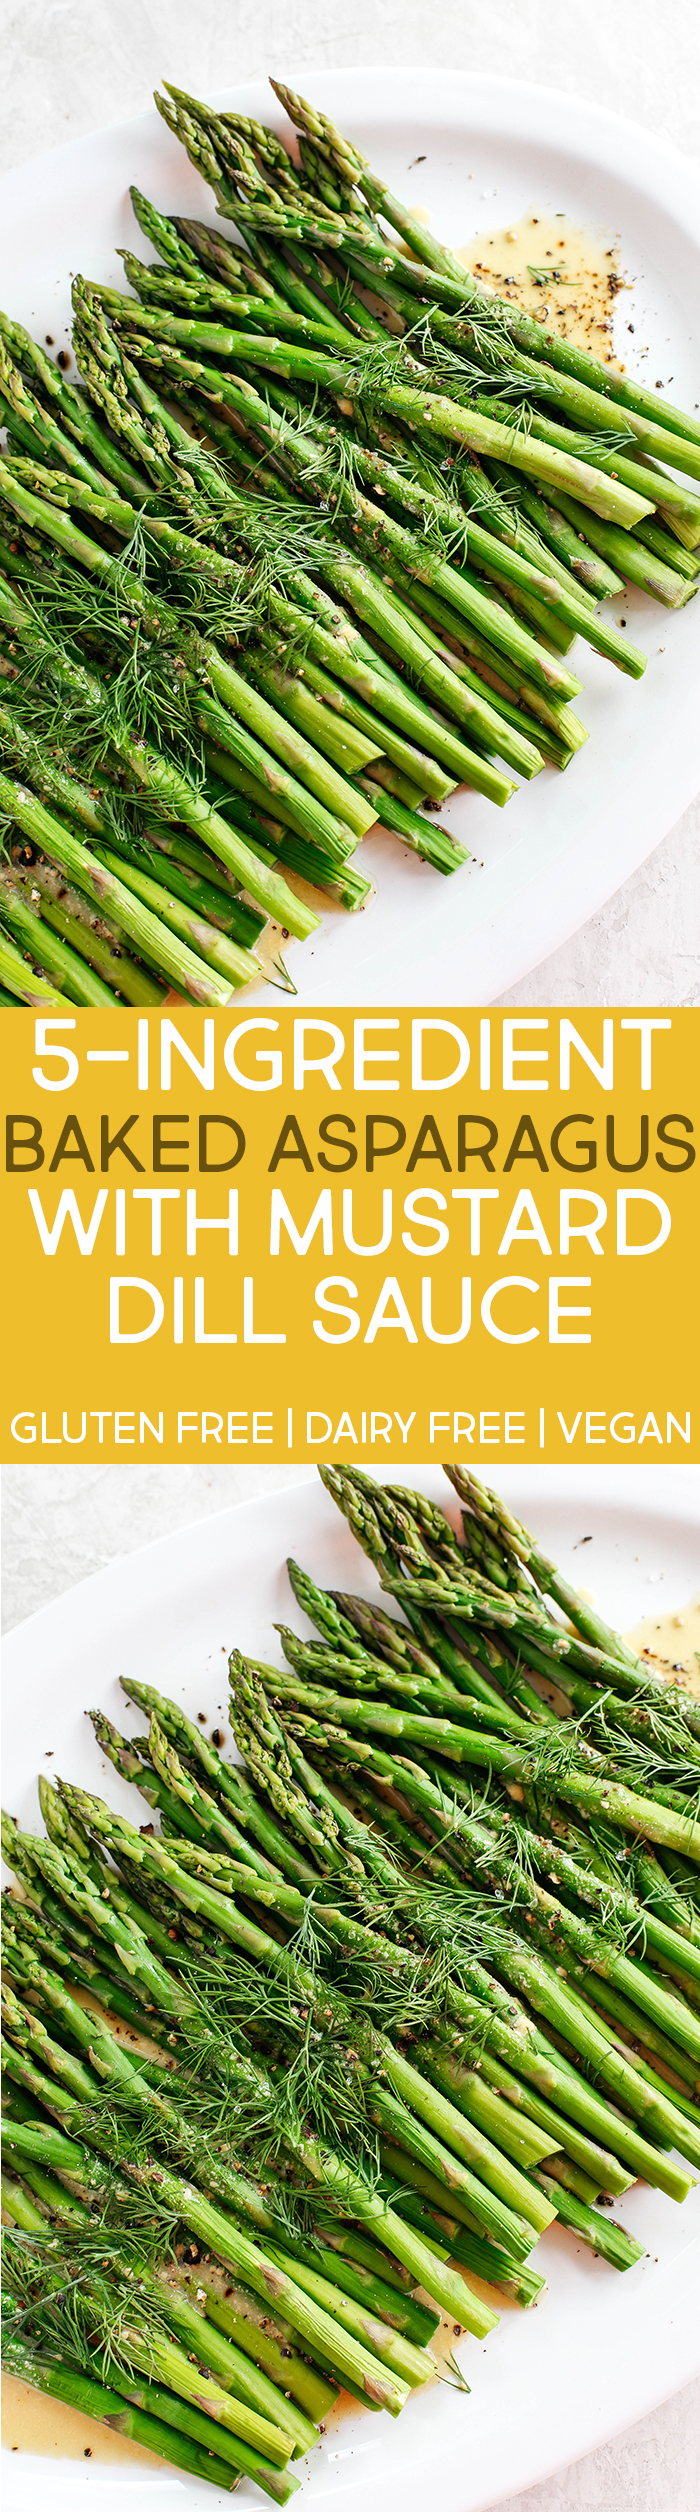 Baked Asparagus with delicious Mustard Dill Sauce makes the perfect healthy side dish for any meal with just a few simple ingredients!  #vegan #glutenfree